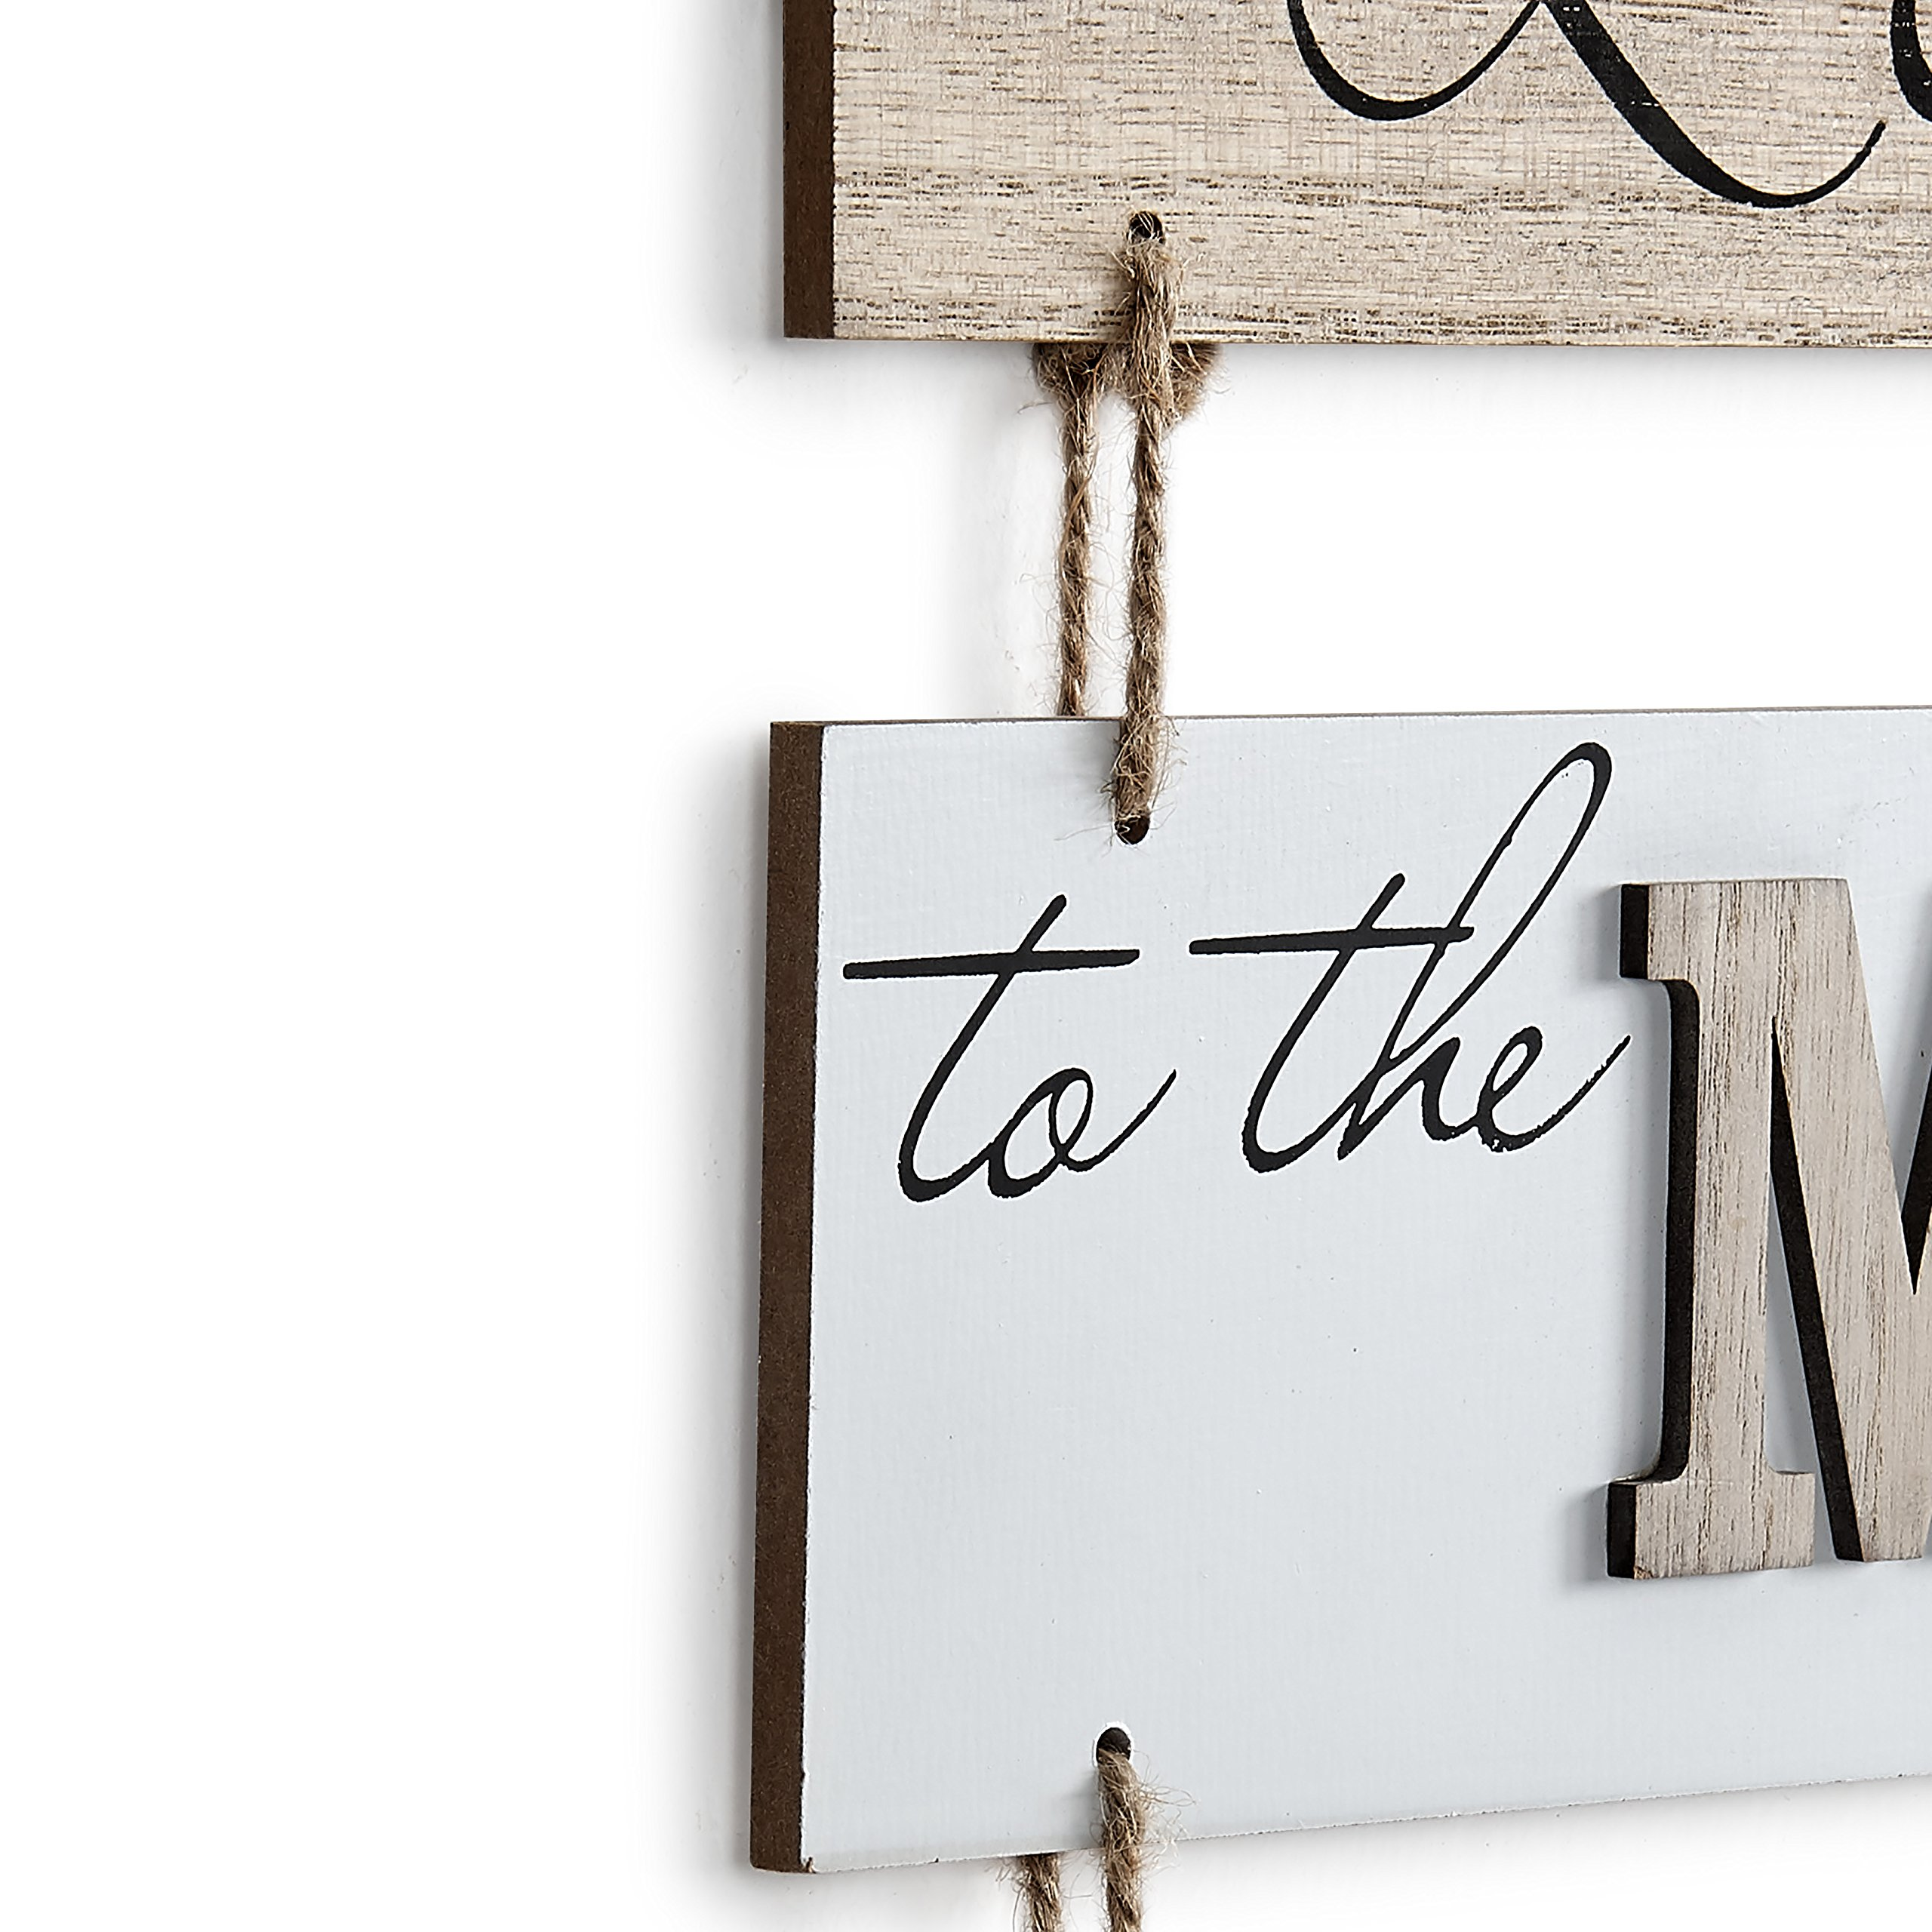 Danya B. ''I Love to the Moon and Back'' Sectioned Wooden Wall Plaque by Danya B (Image #2)